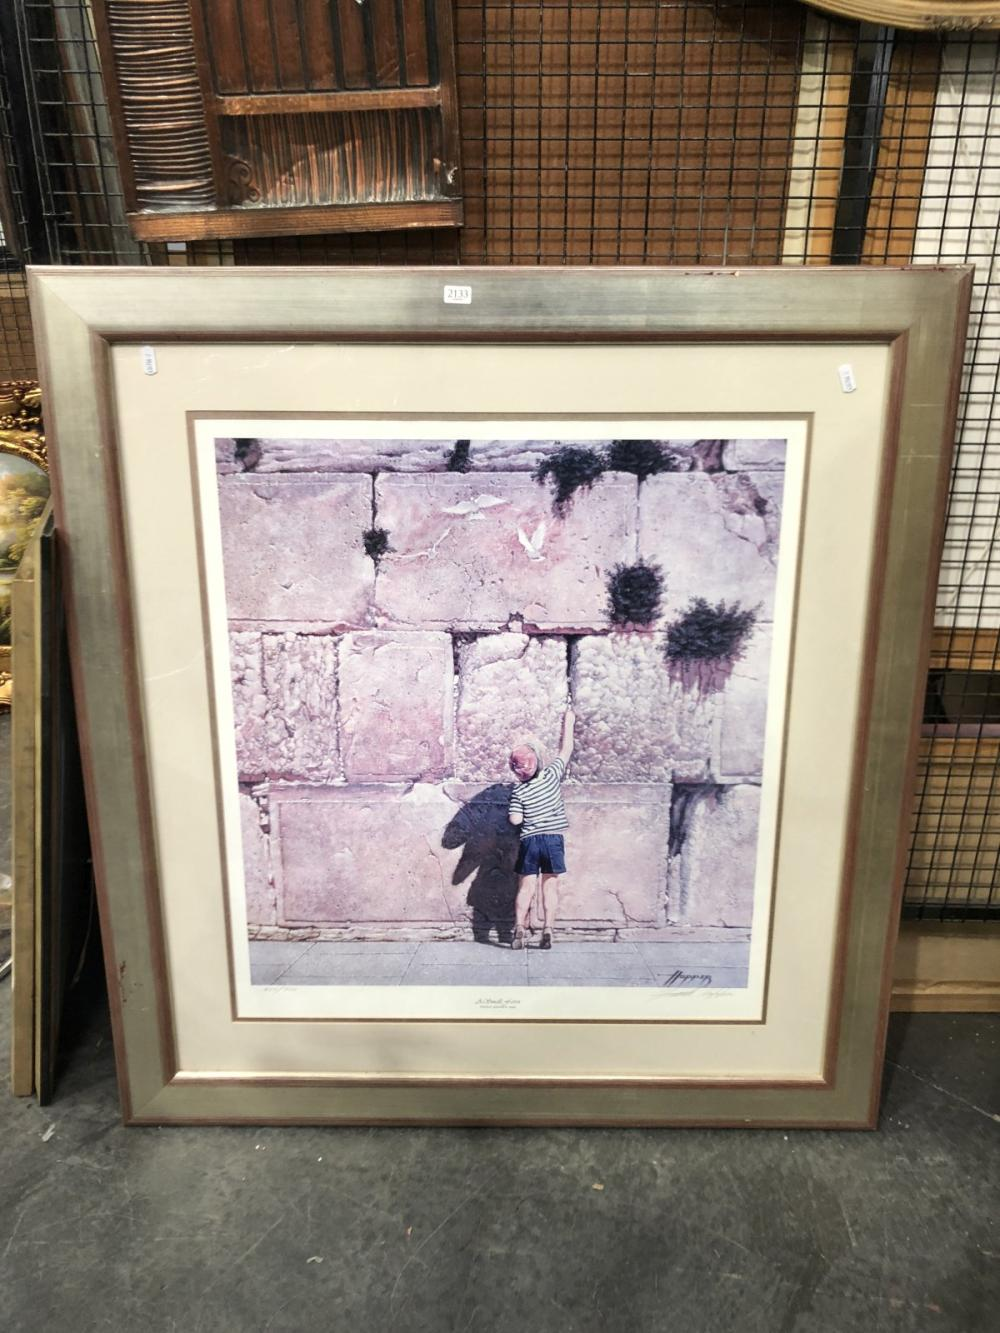 Frank Hopper Decorative Print, edition and signed